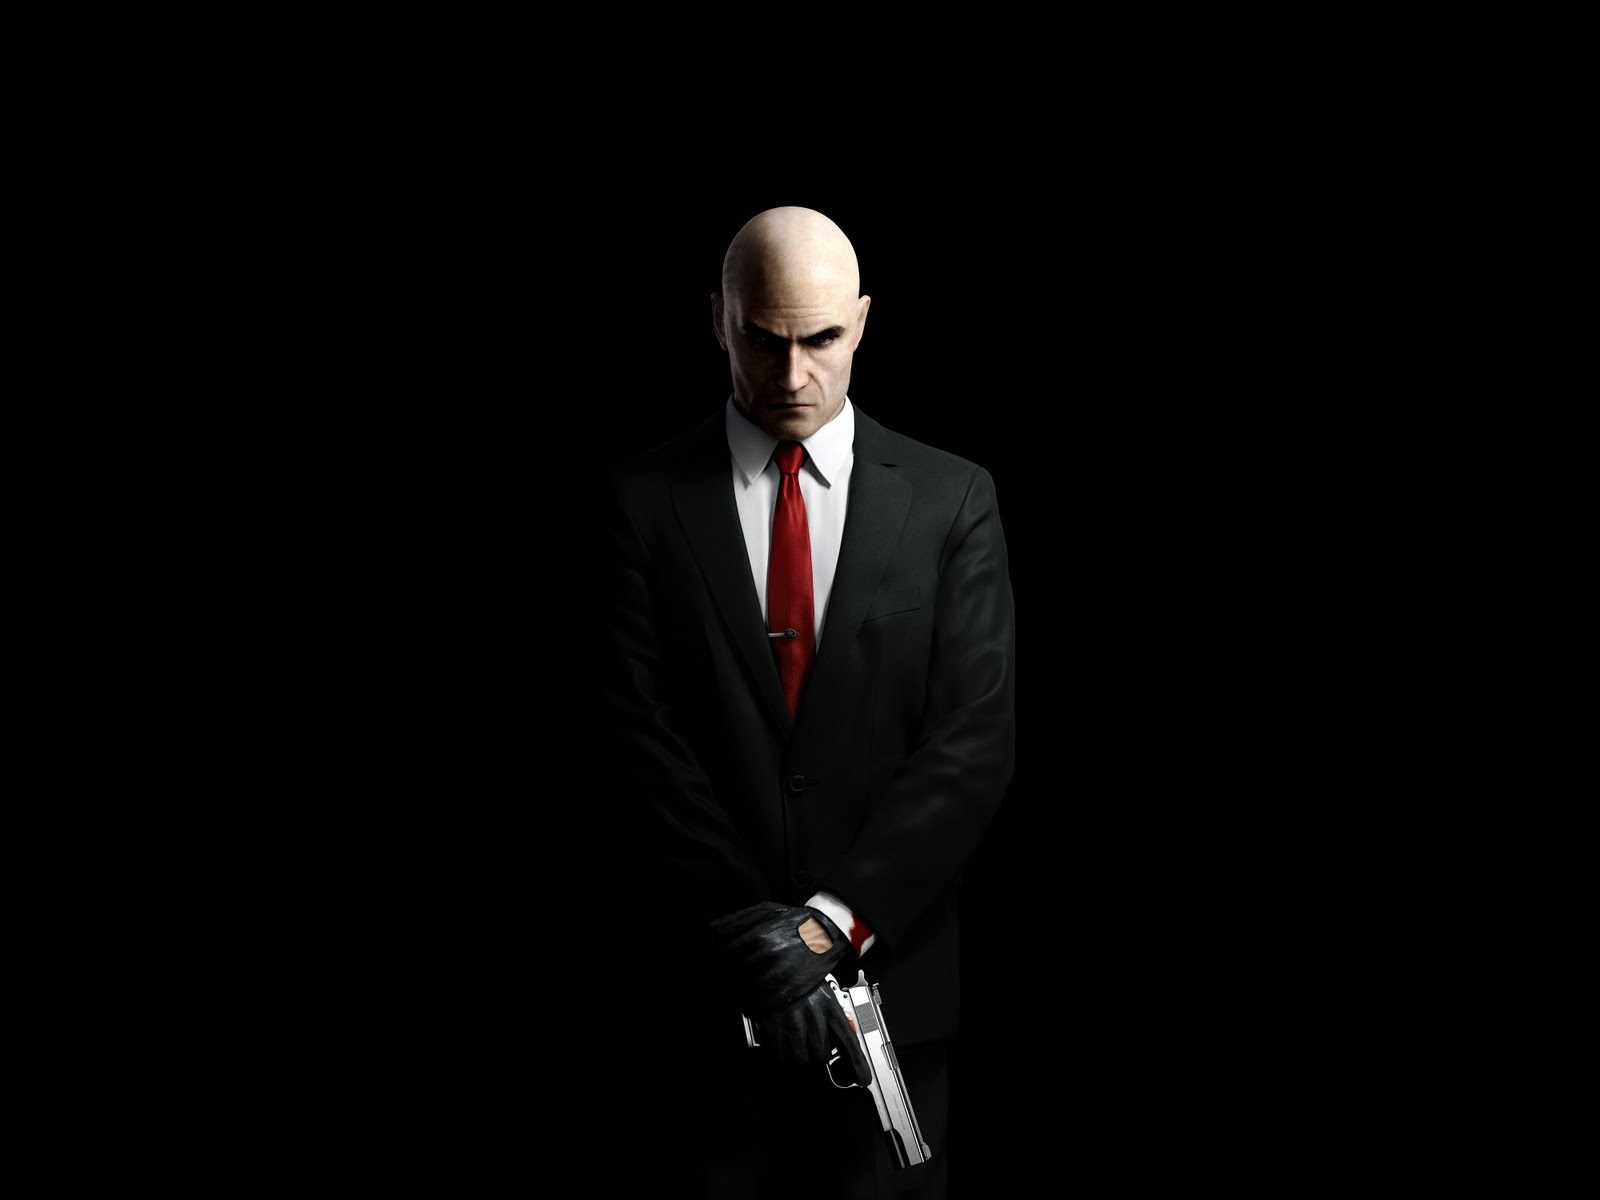 Hitman Absolution Game HD Wallpapers Download Wallpapers in HD 1600x1200